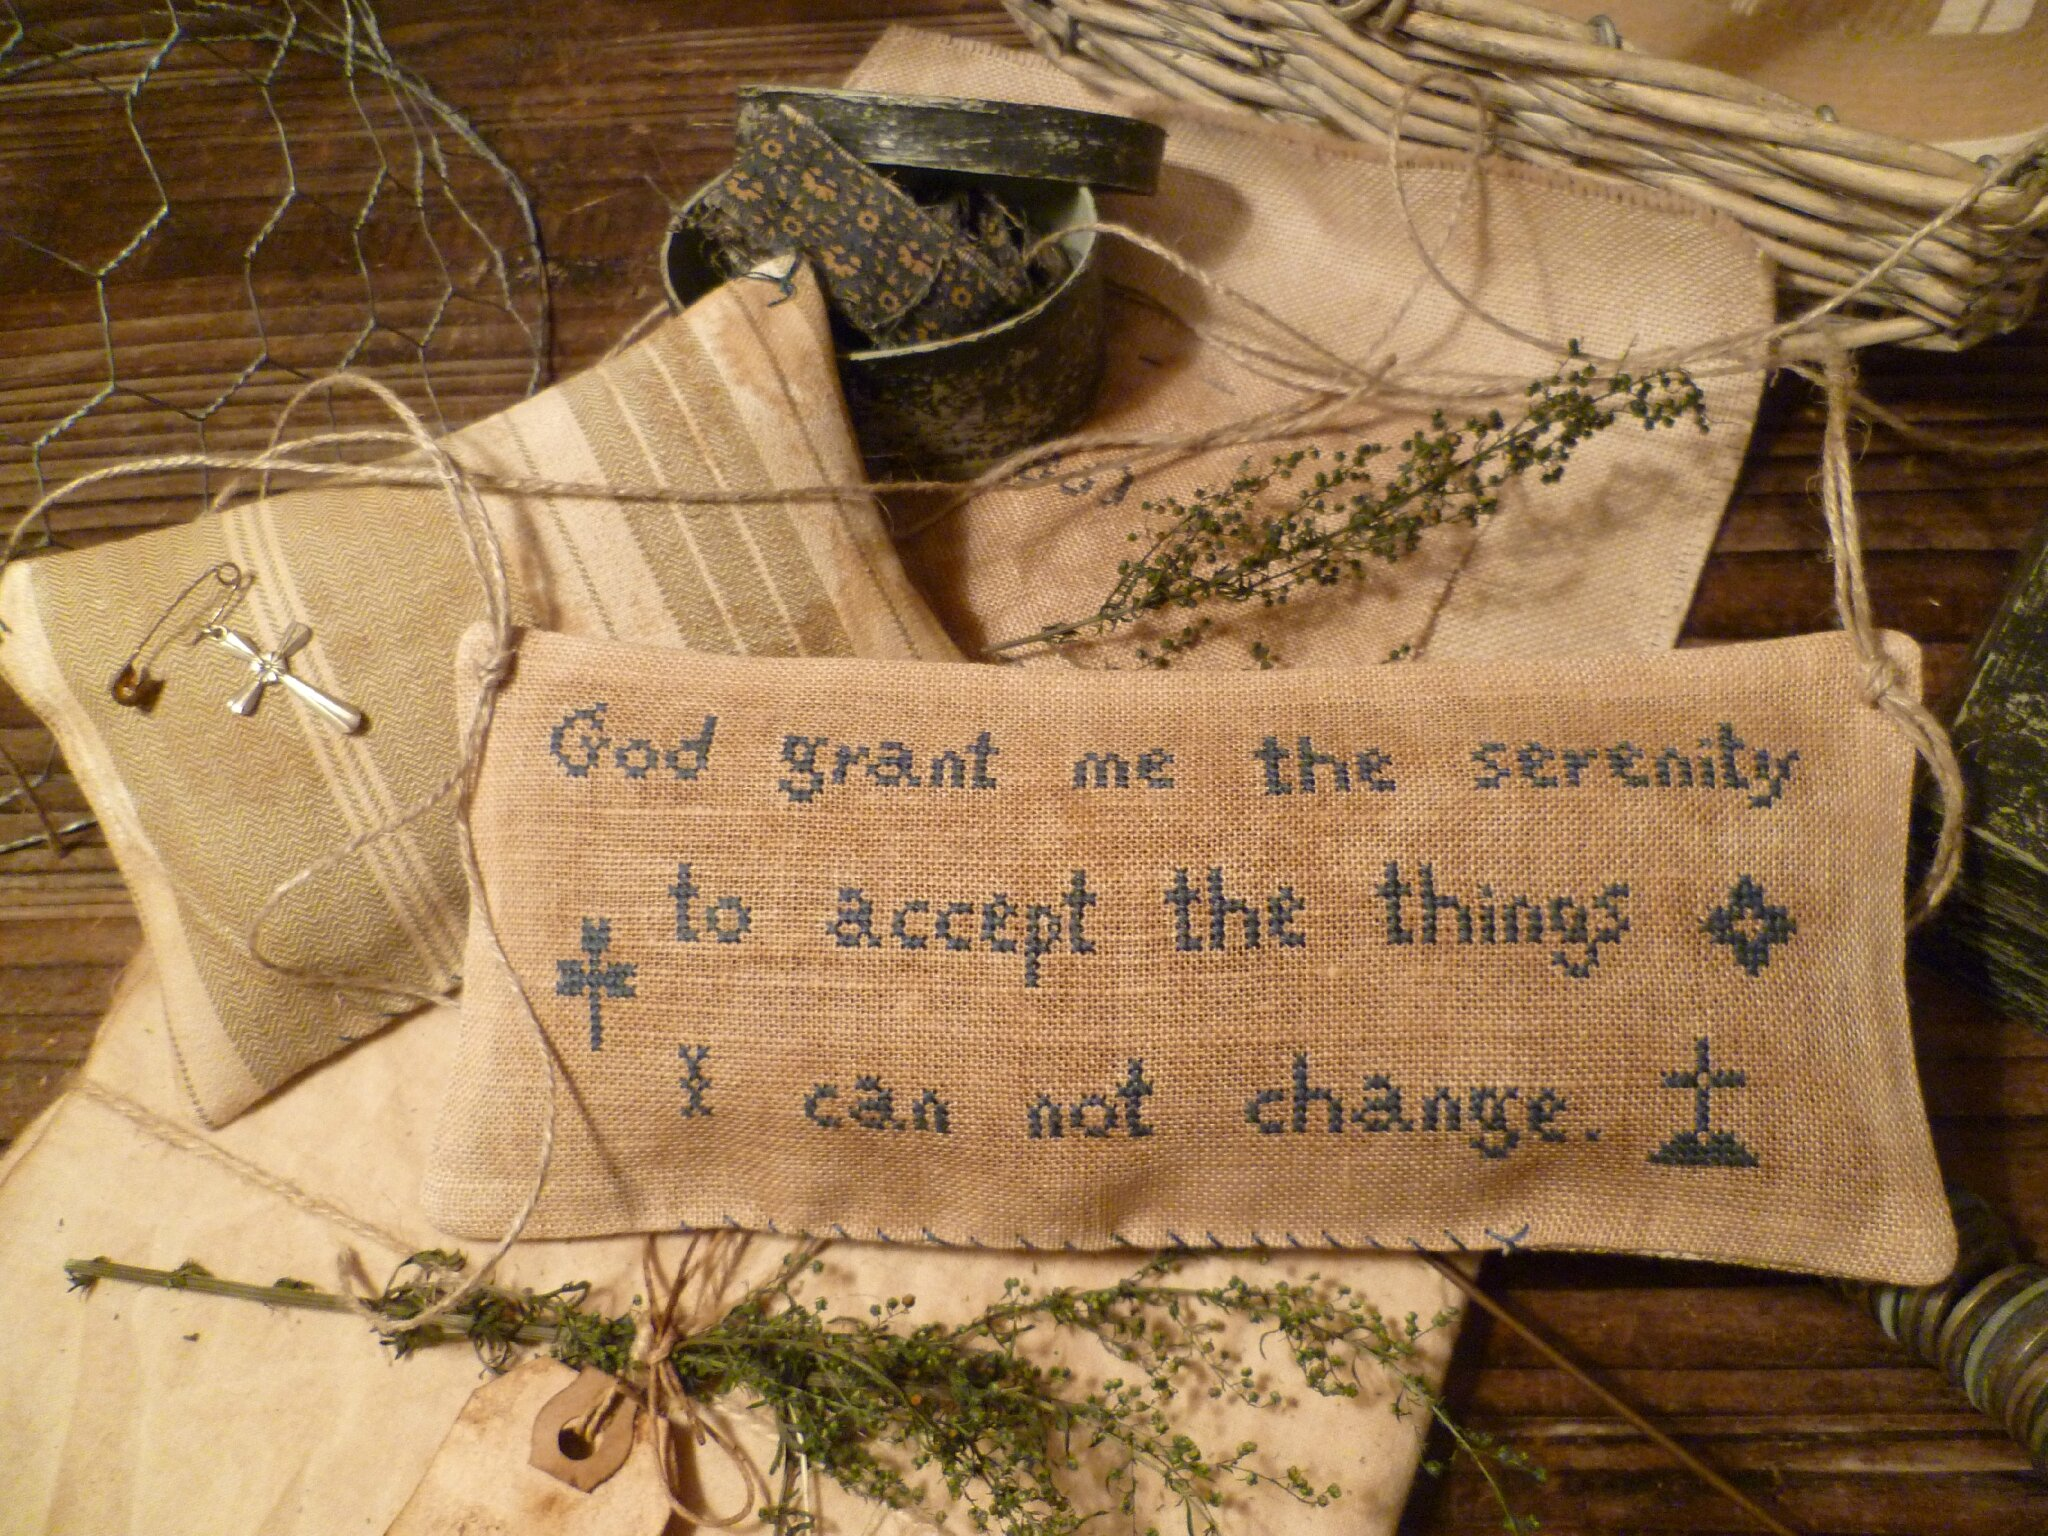 God grant me the serenity Pattern US $ 7.00 CHART Only !